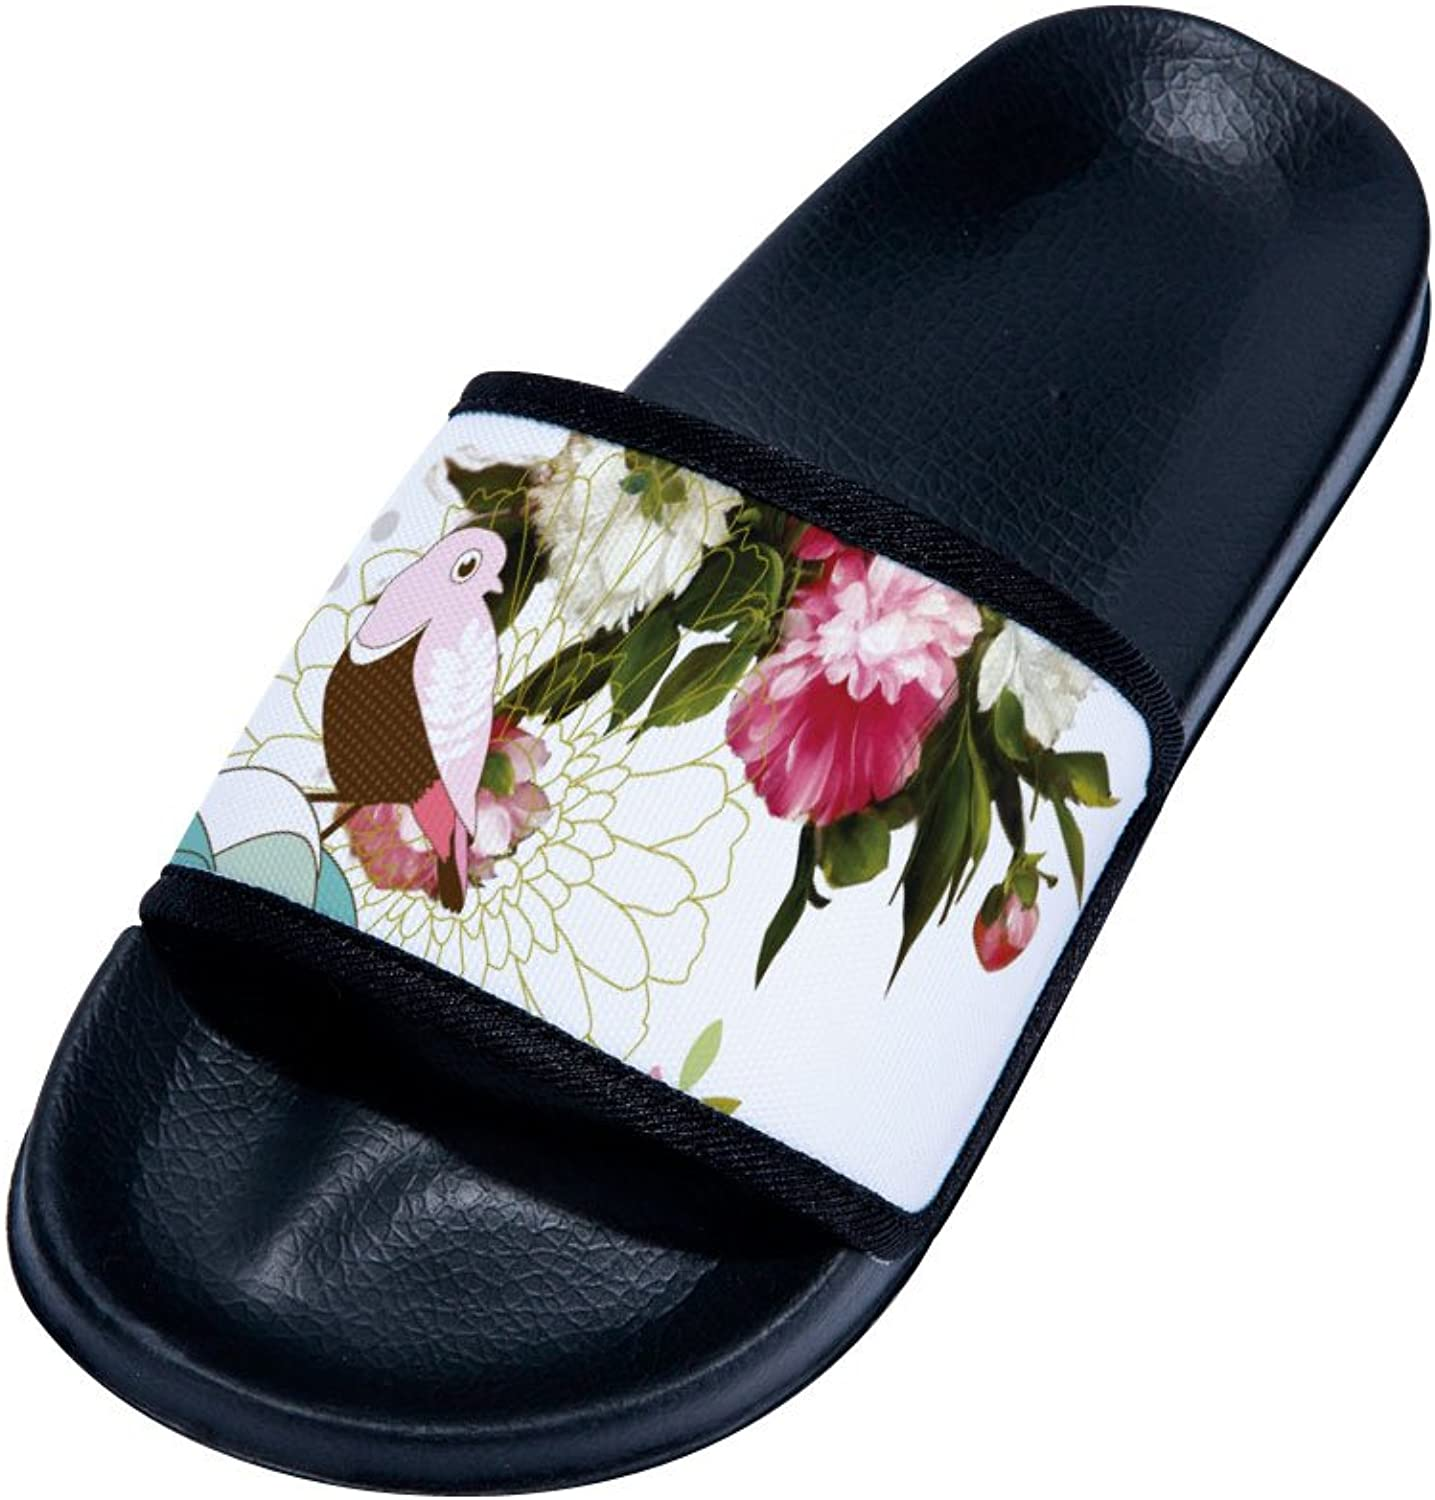 Cute Bird and Flowers Slippers Quick-Drying Non-Slip Slippers for Womens